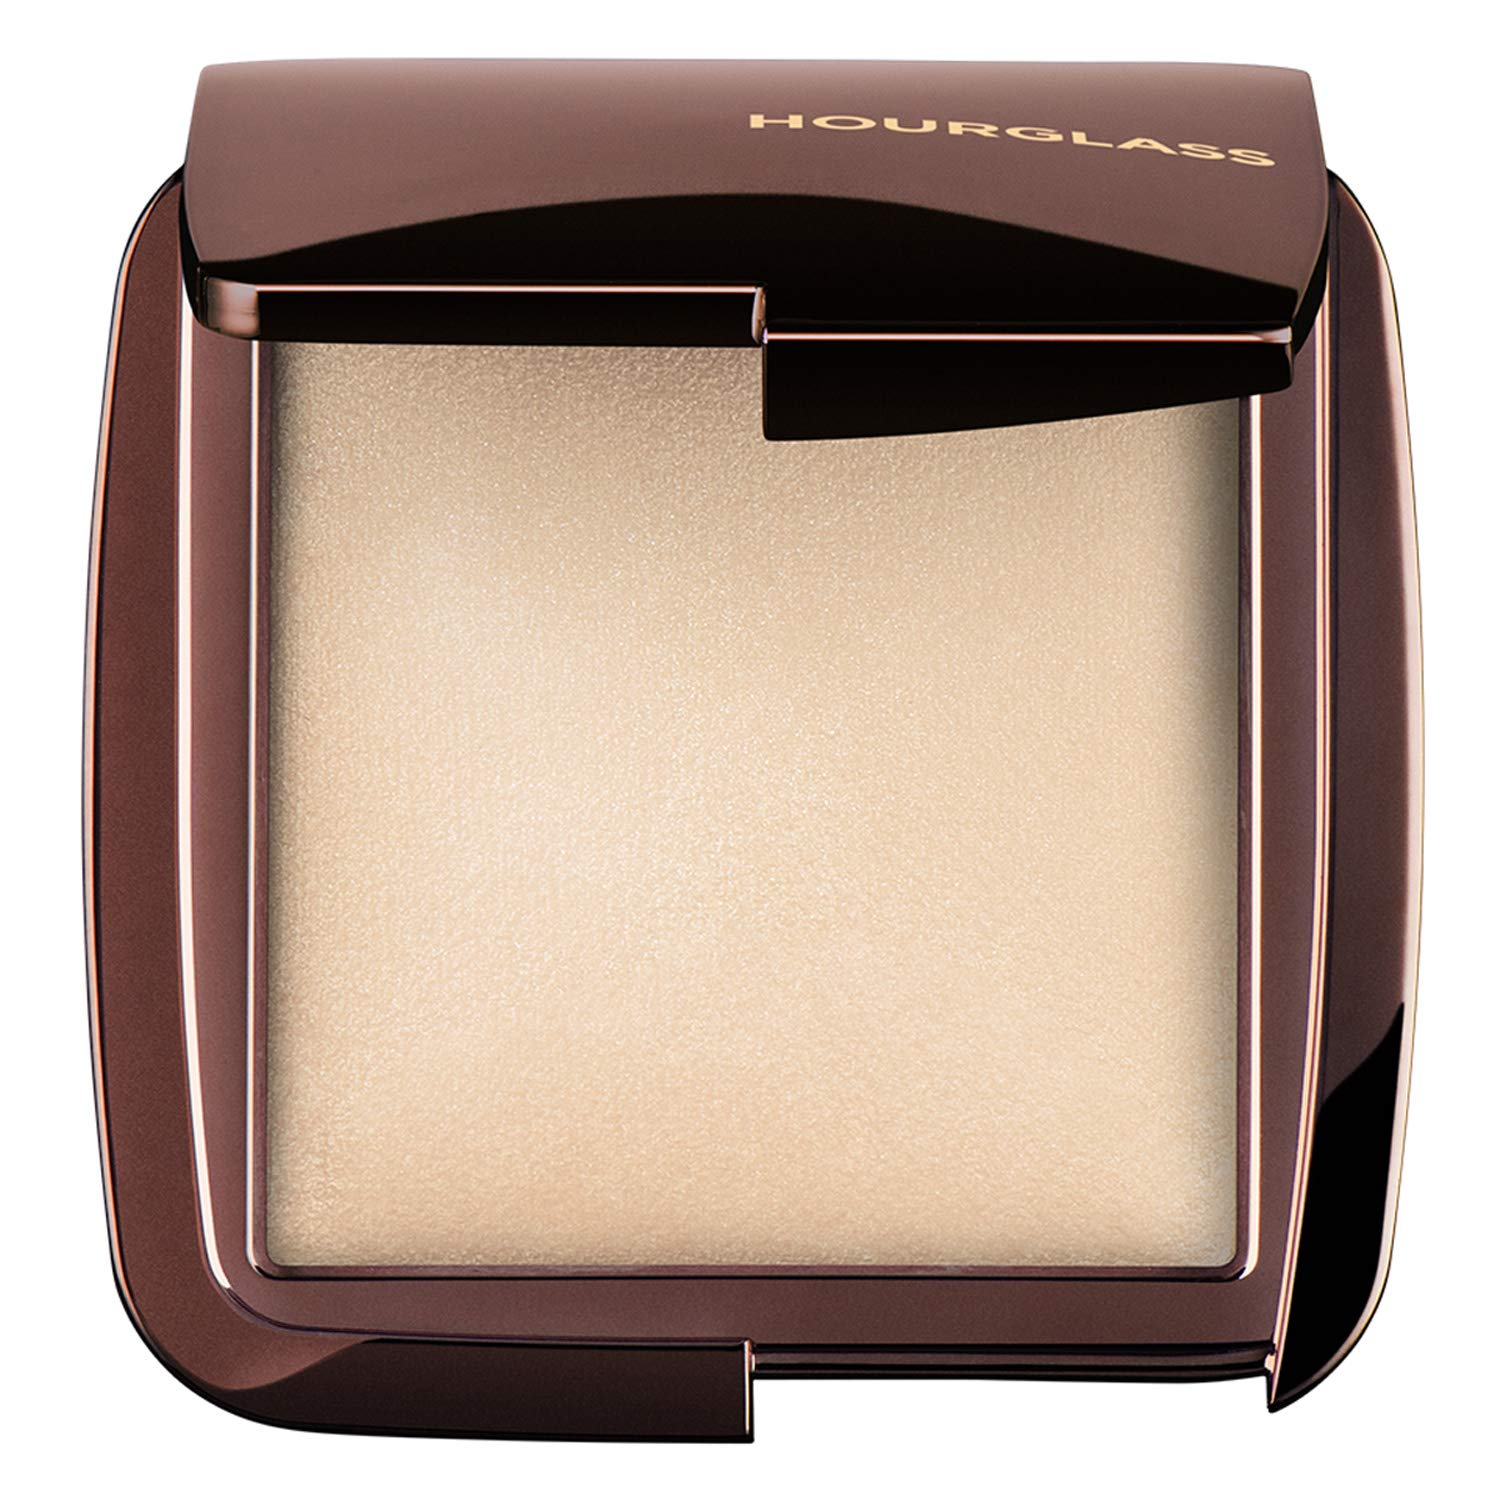 Hourglass Ambient Lighting Finishing Powder. Diffused Light Shade Highlighting Powder. (0.35 ounce)